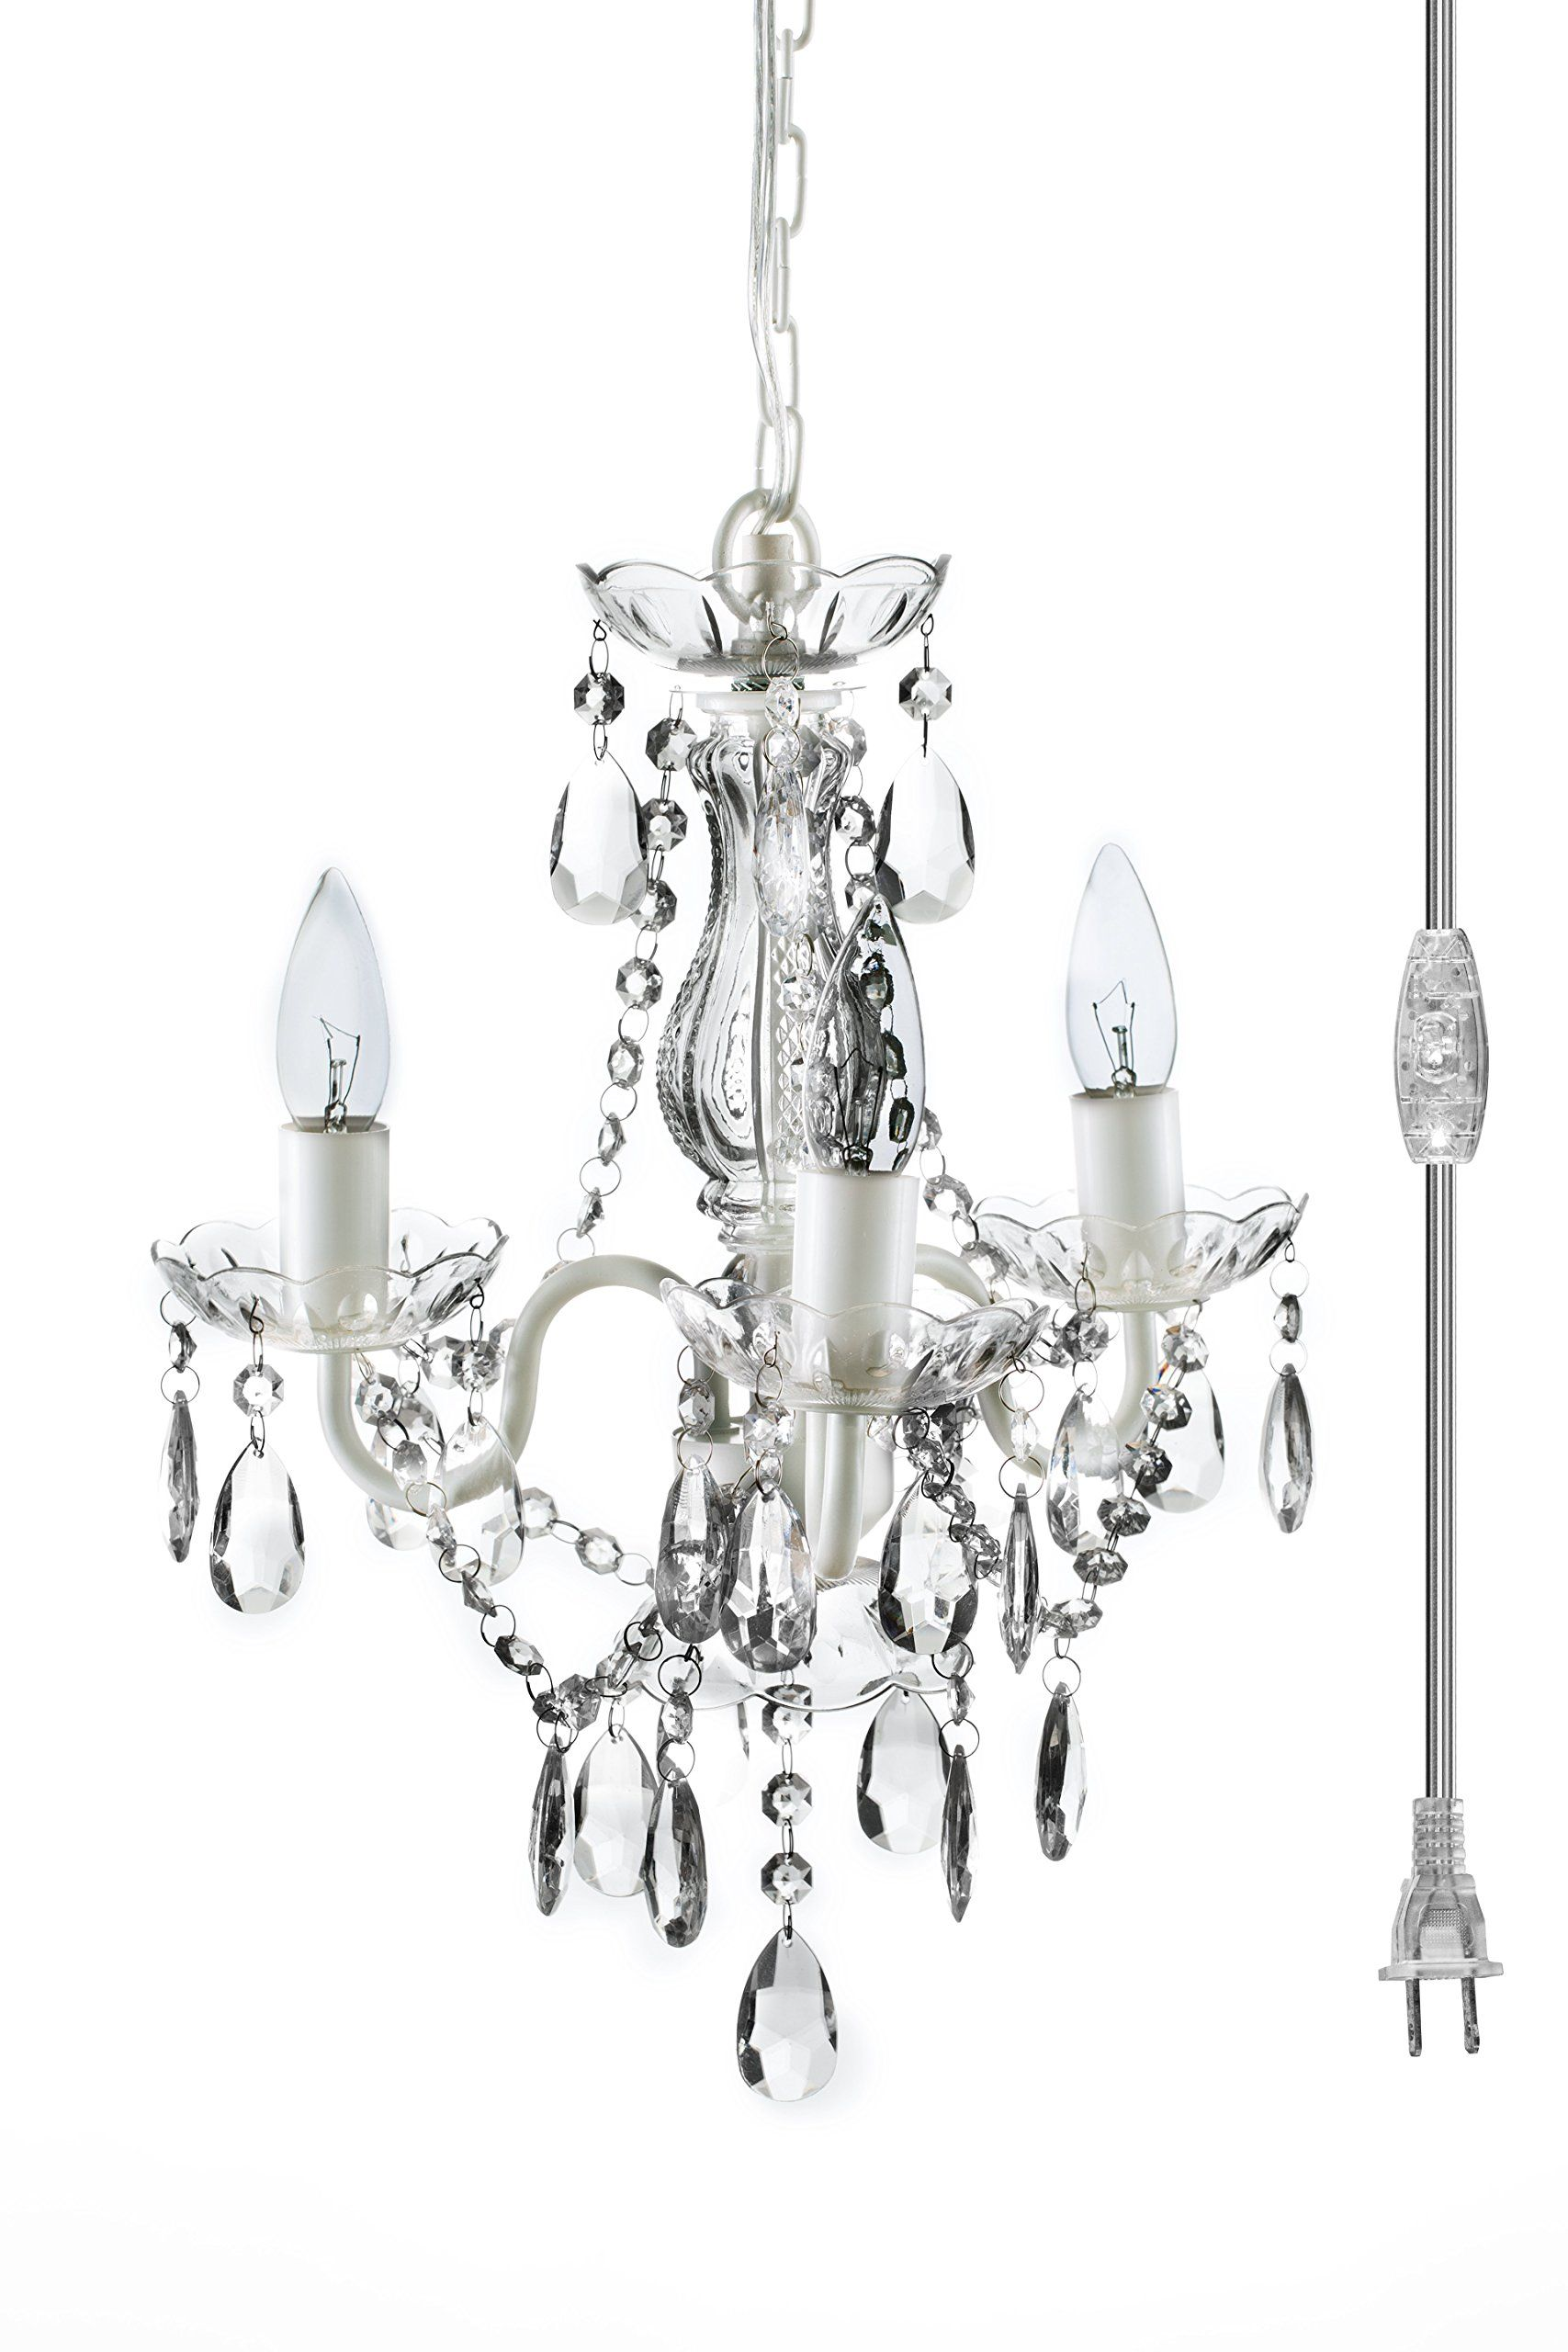 4 Light Shabby Chic Crystal Plug In Chandelier White Plug In